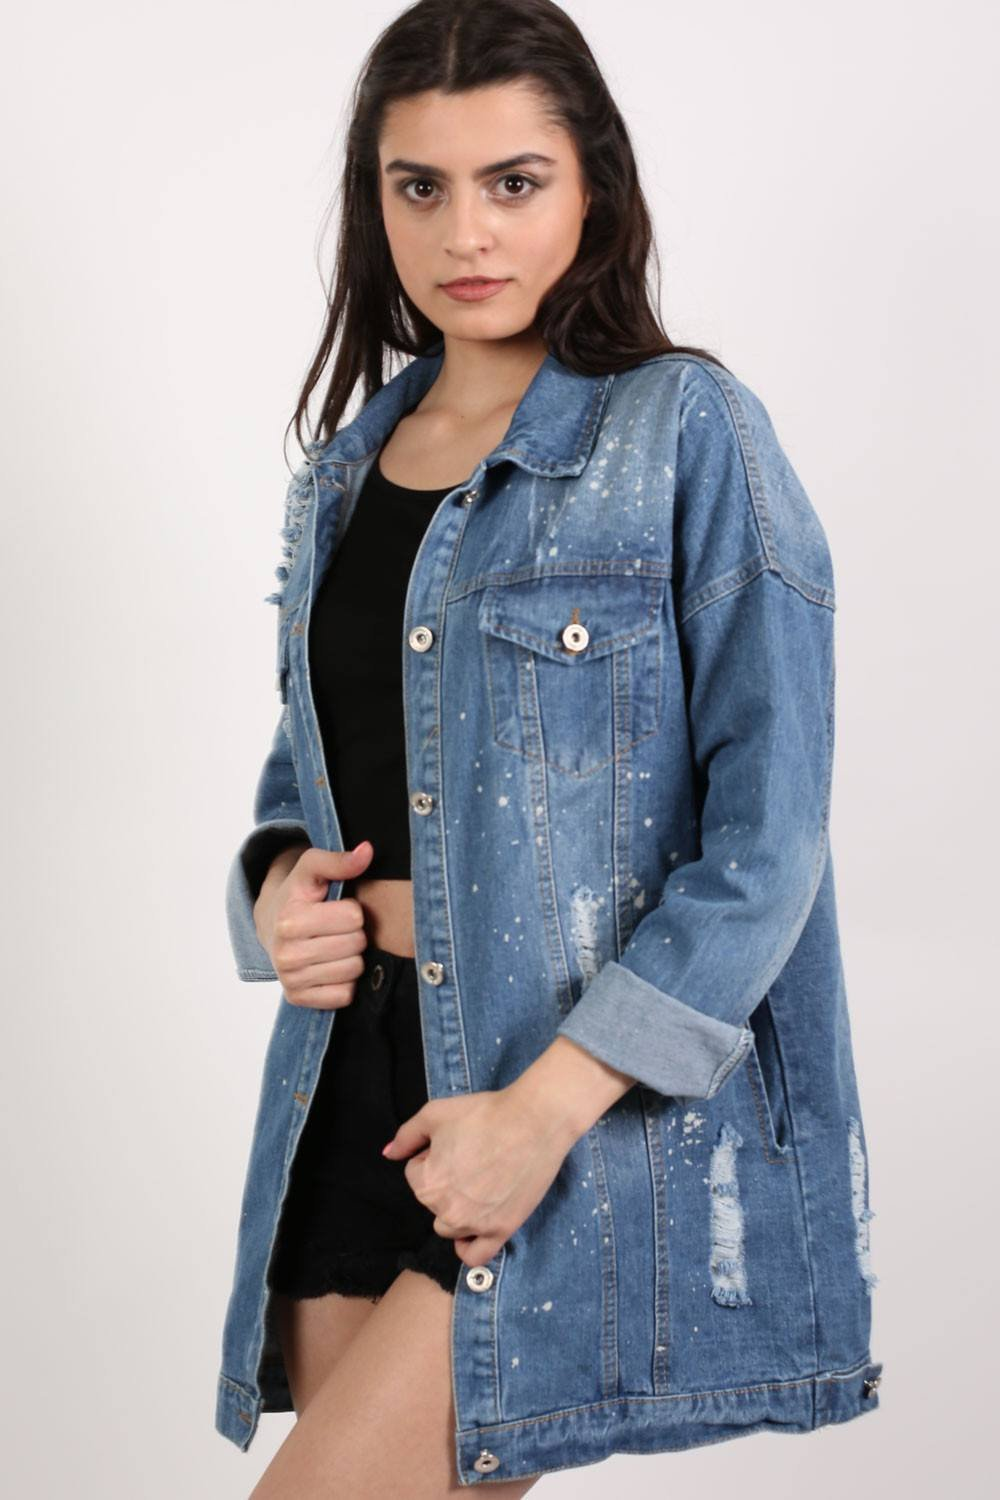 Oversized Paint Splattered Ripped Denim Jacket in Denim 0